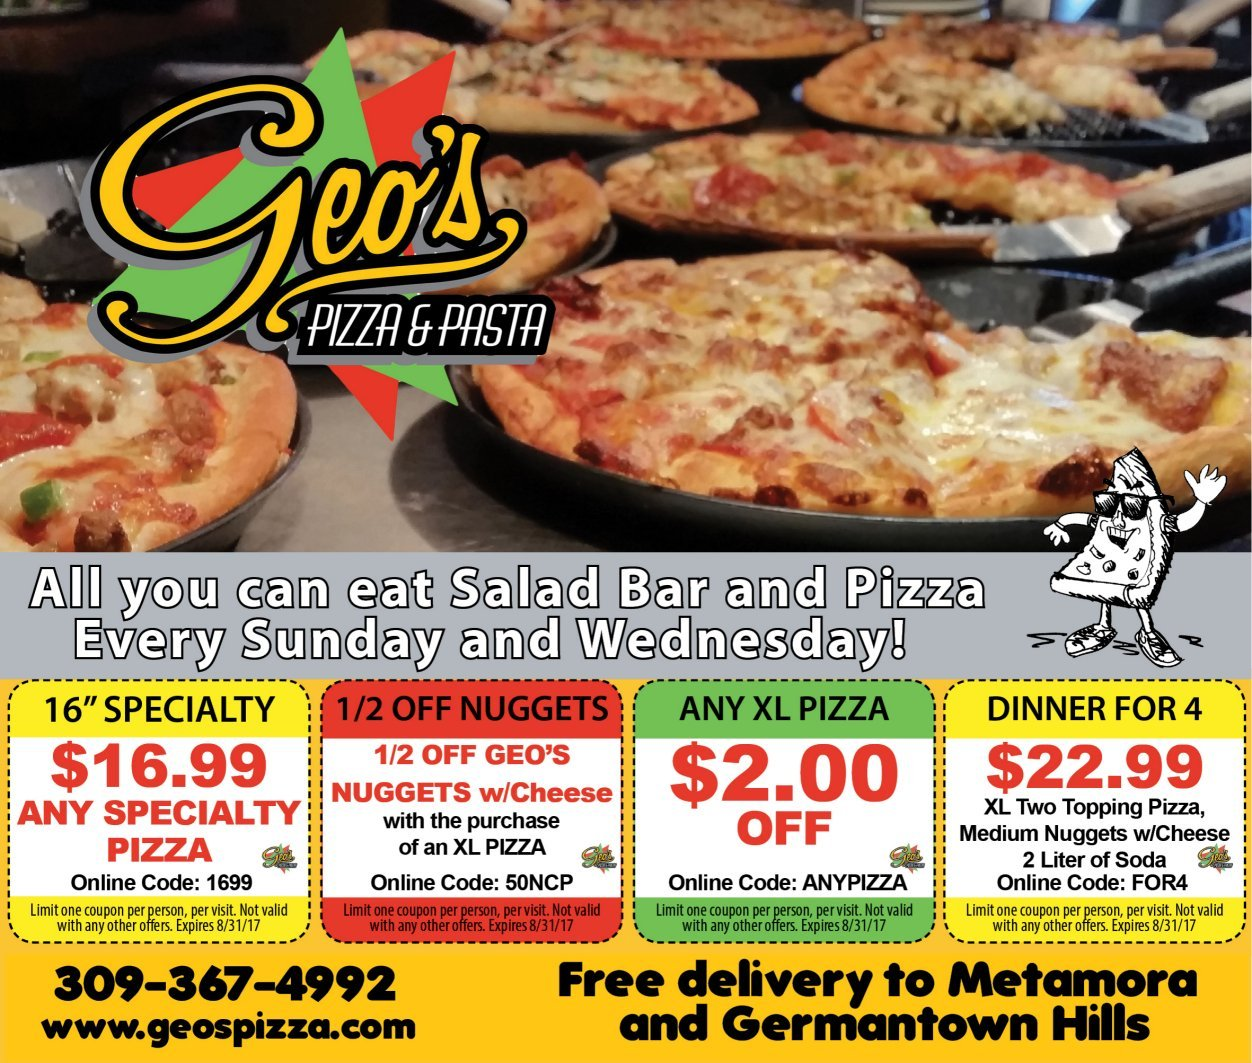 Geo's Pizza and Pasta coupons